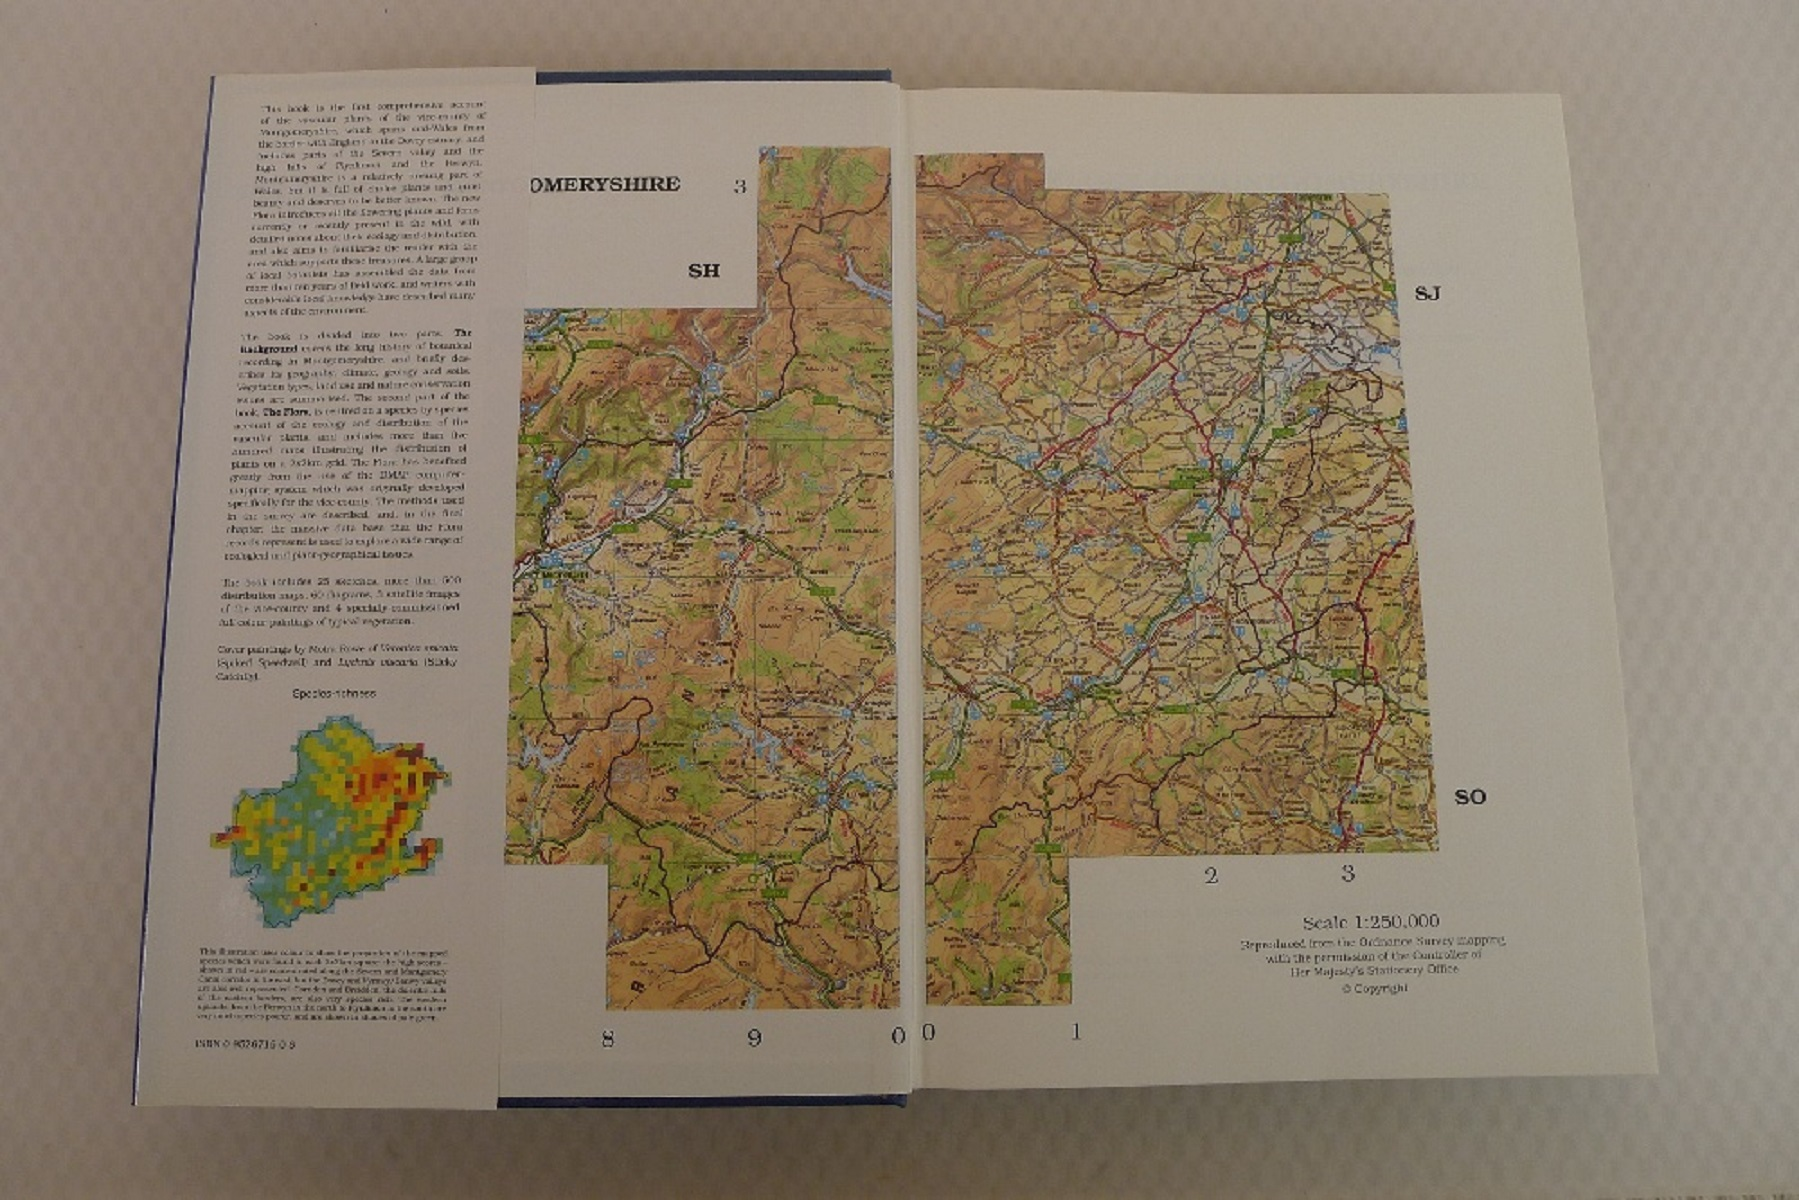 The Flora of Montgomeryshire by Ian Trueman, Alan Morton and Marjorie Wainwright published by - Image 4 of 7